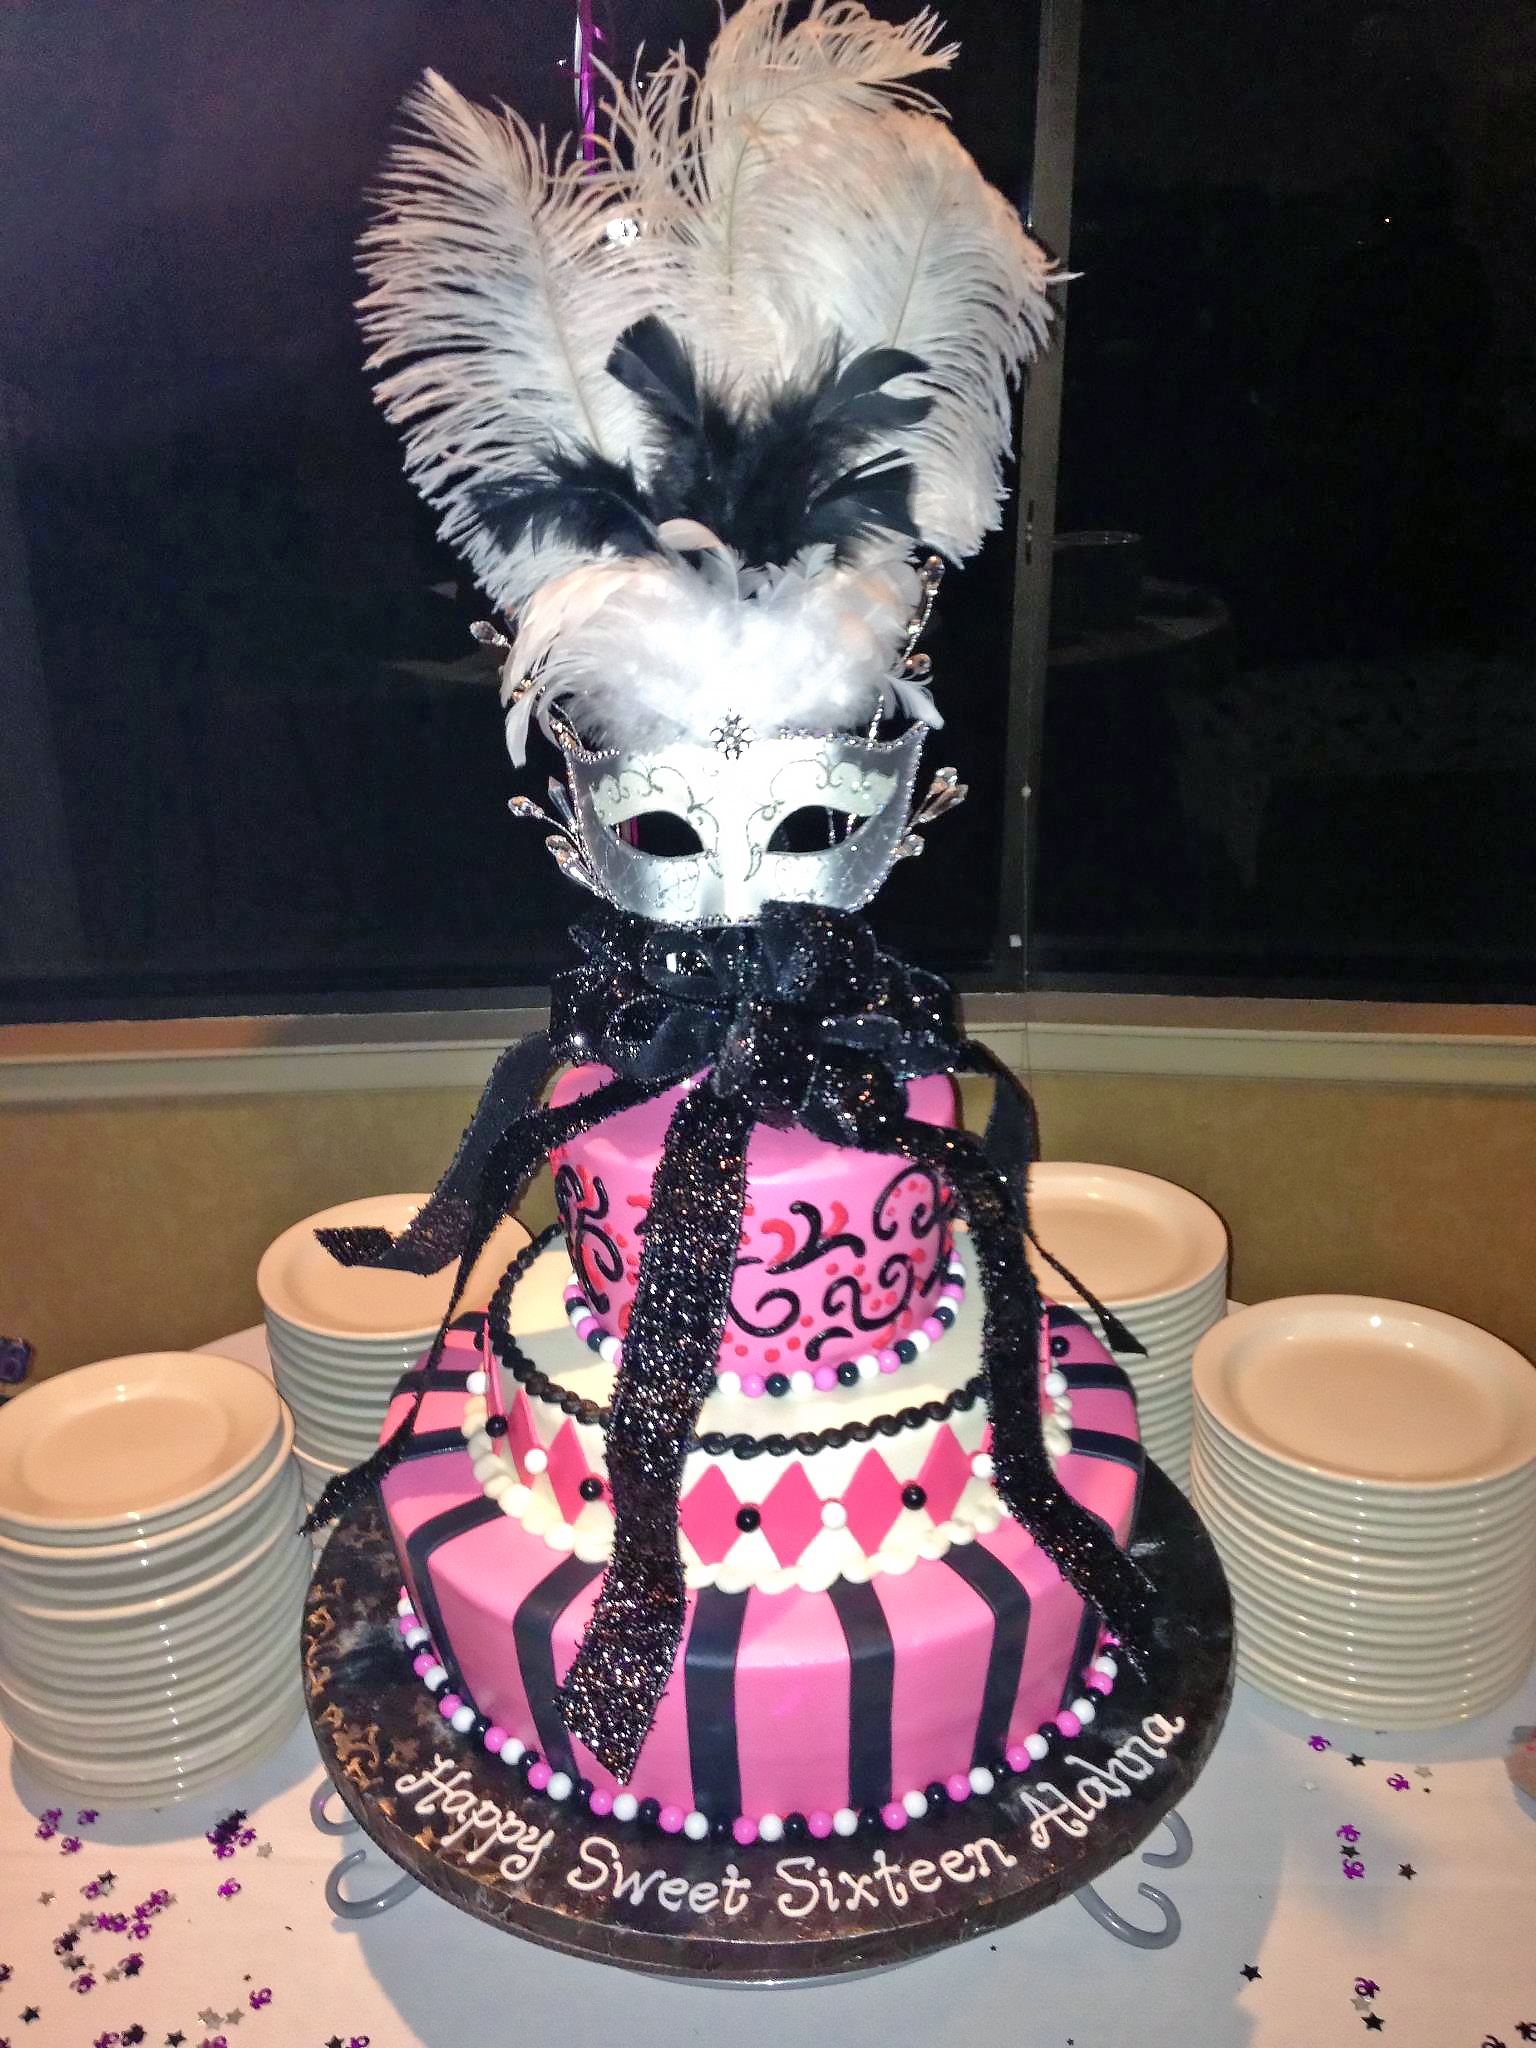 16th-birthday-3tier-cake-girls-masquerade-625